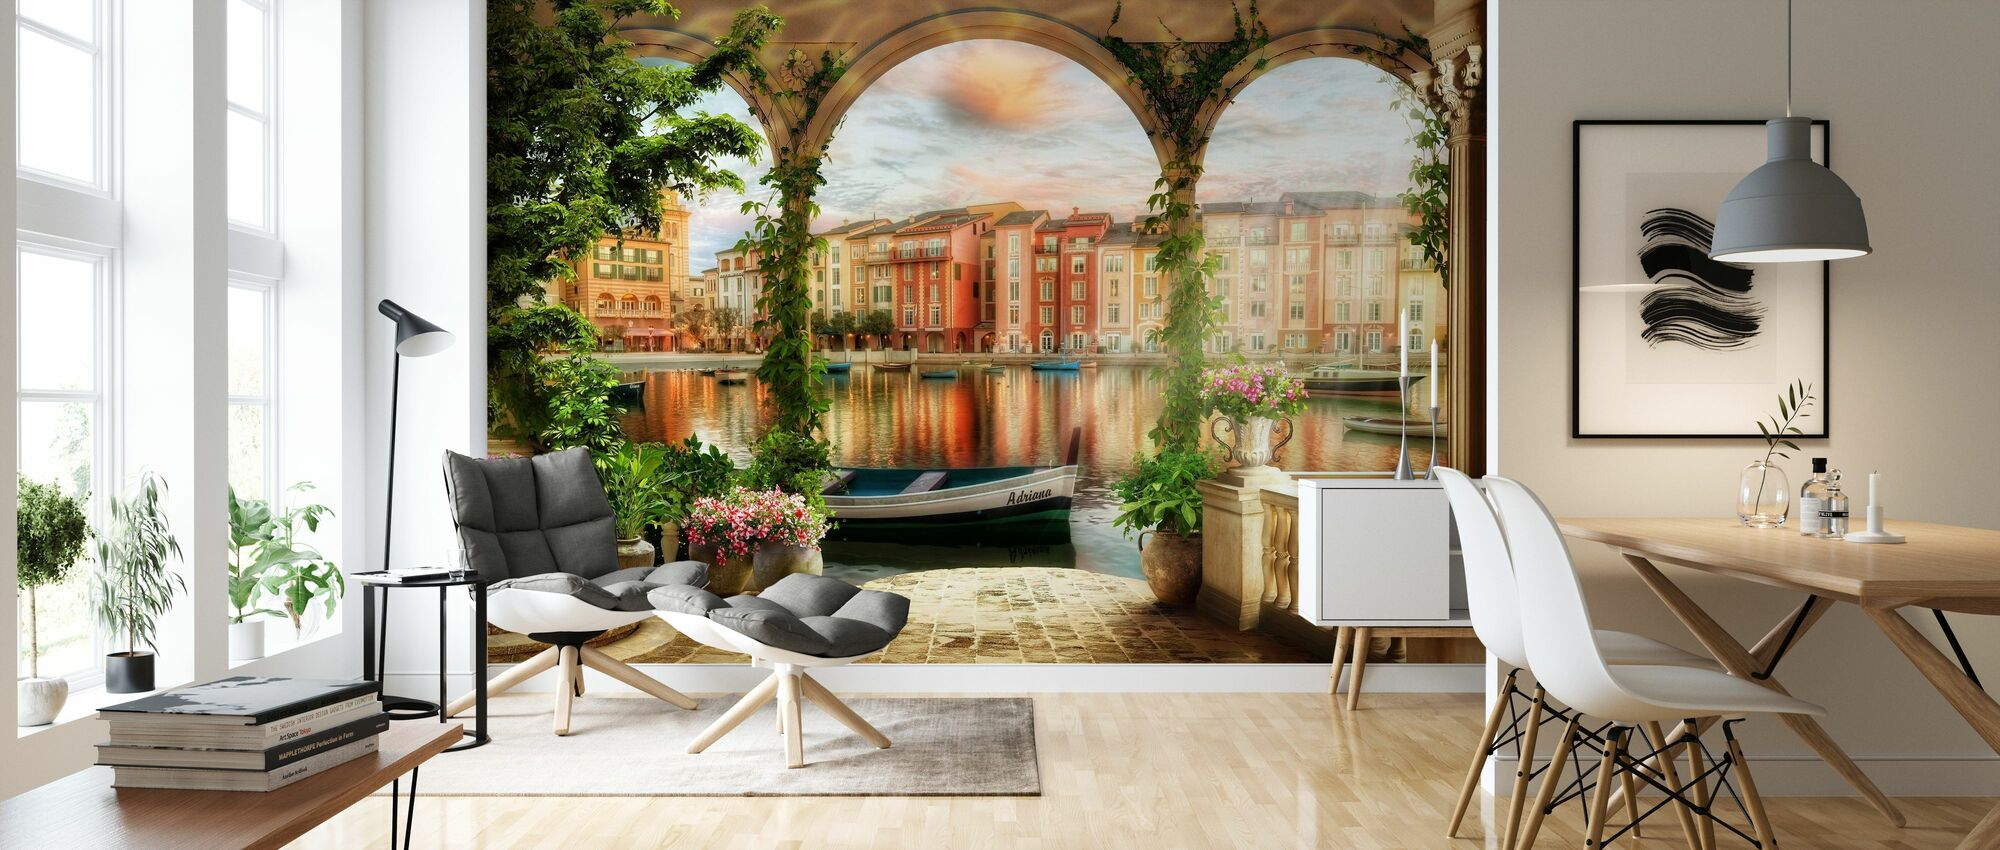 Porch in the Canals of Venice - Wallpaper - Living Room